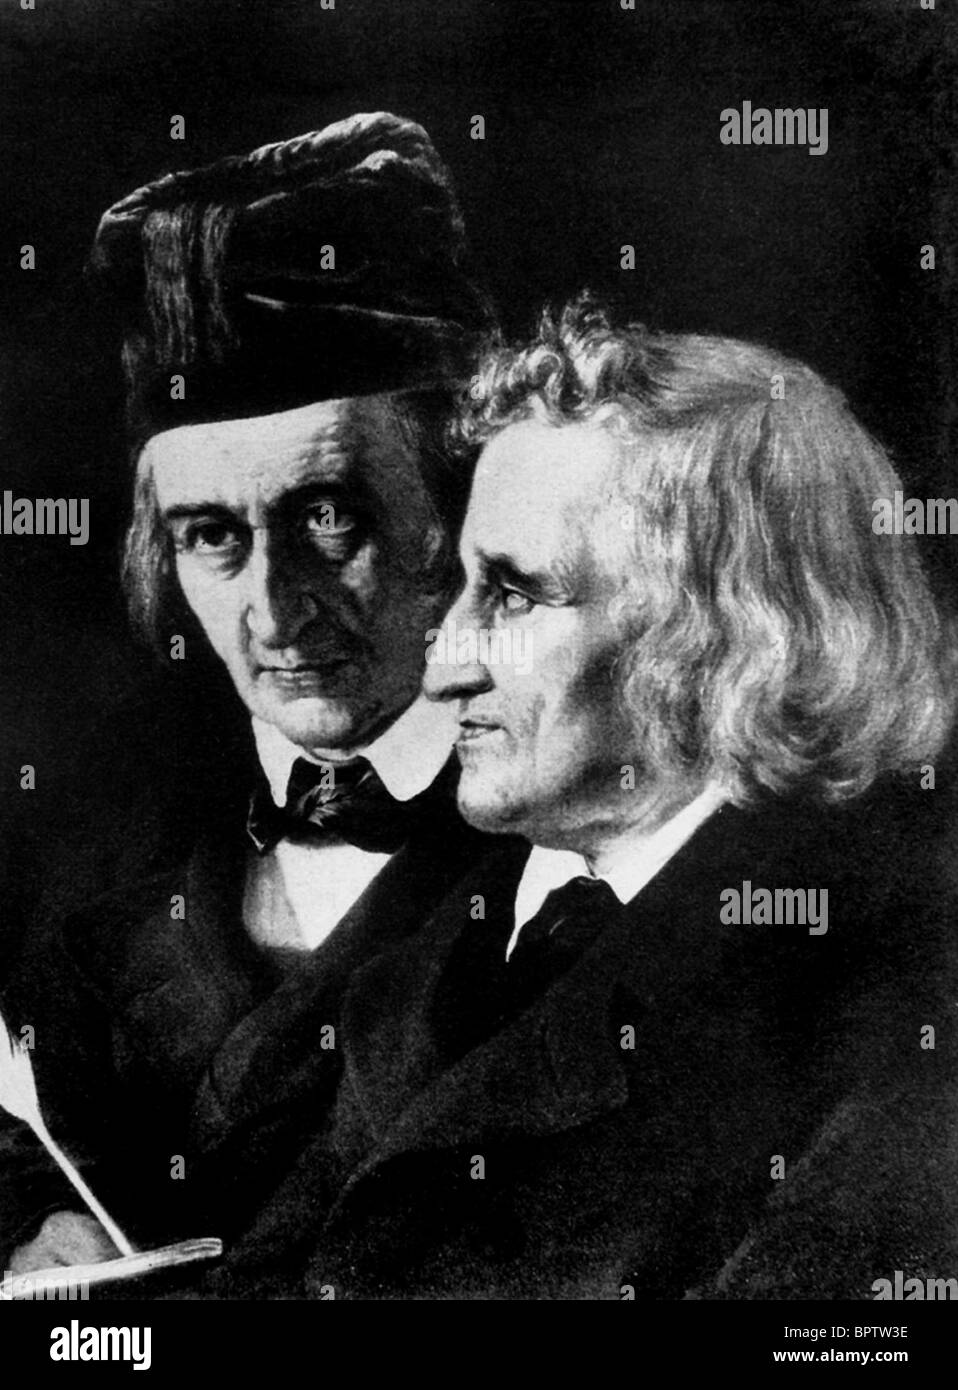 WILHELM GRIMM & JACOB GRIMM AUTHORS THE BROTHERS GRIMM (1845) - Stock Image